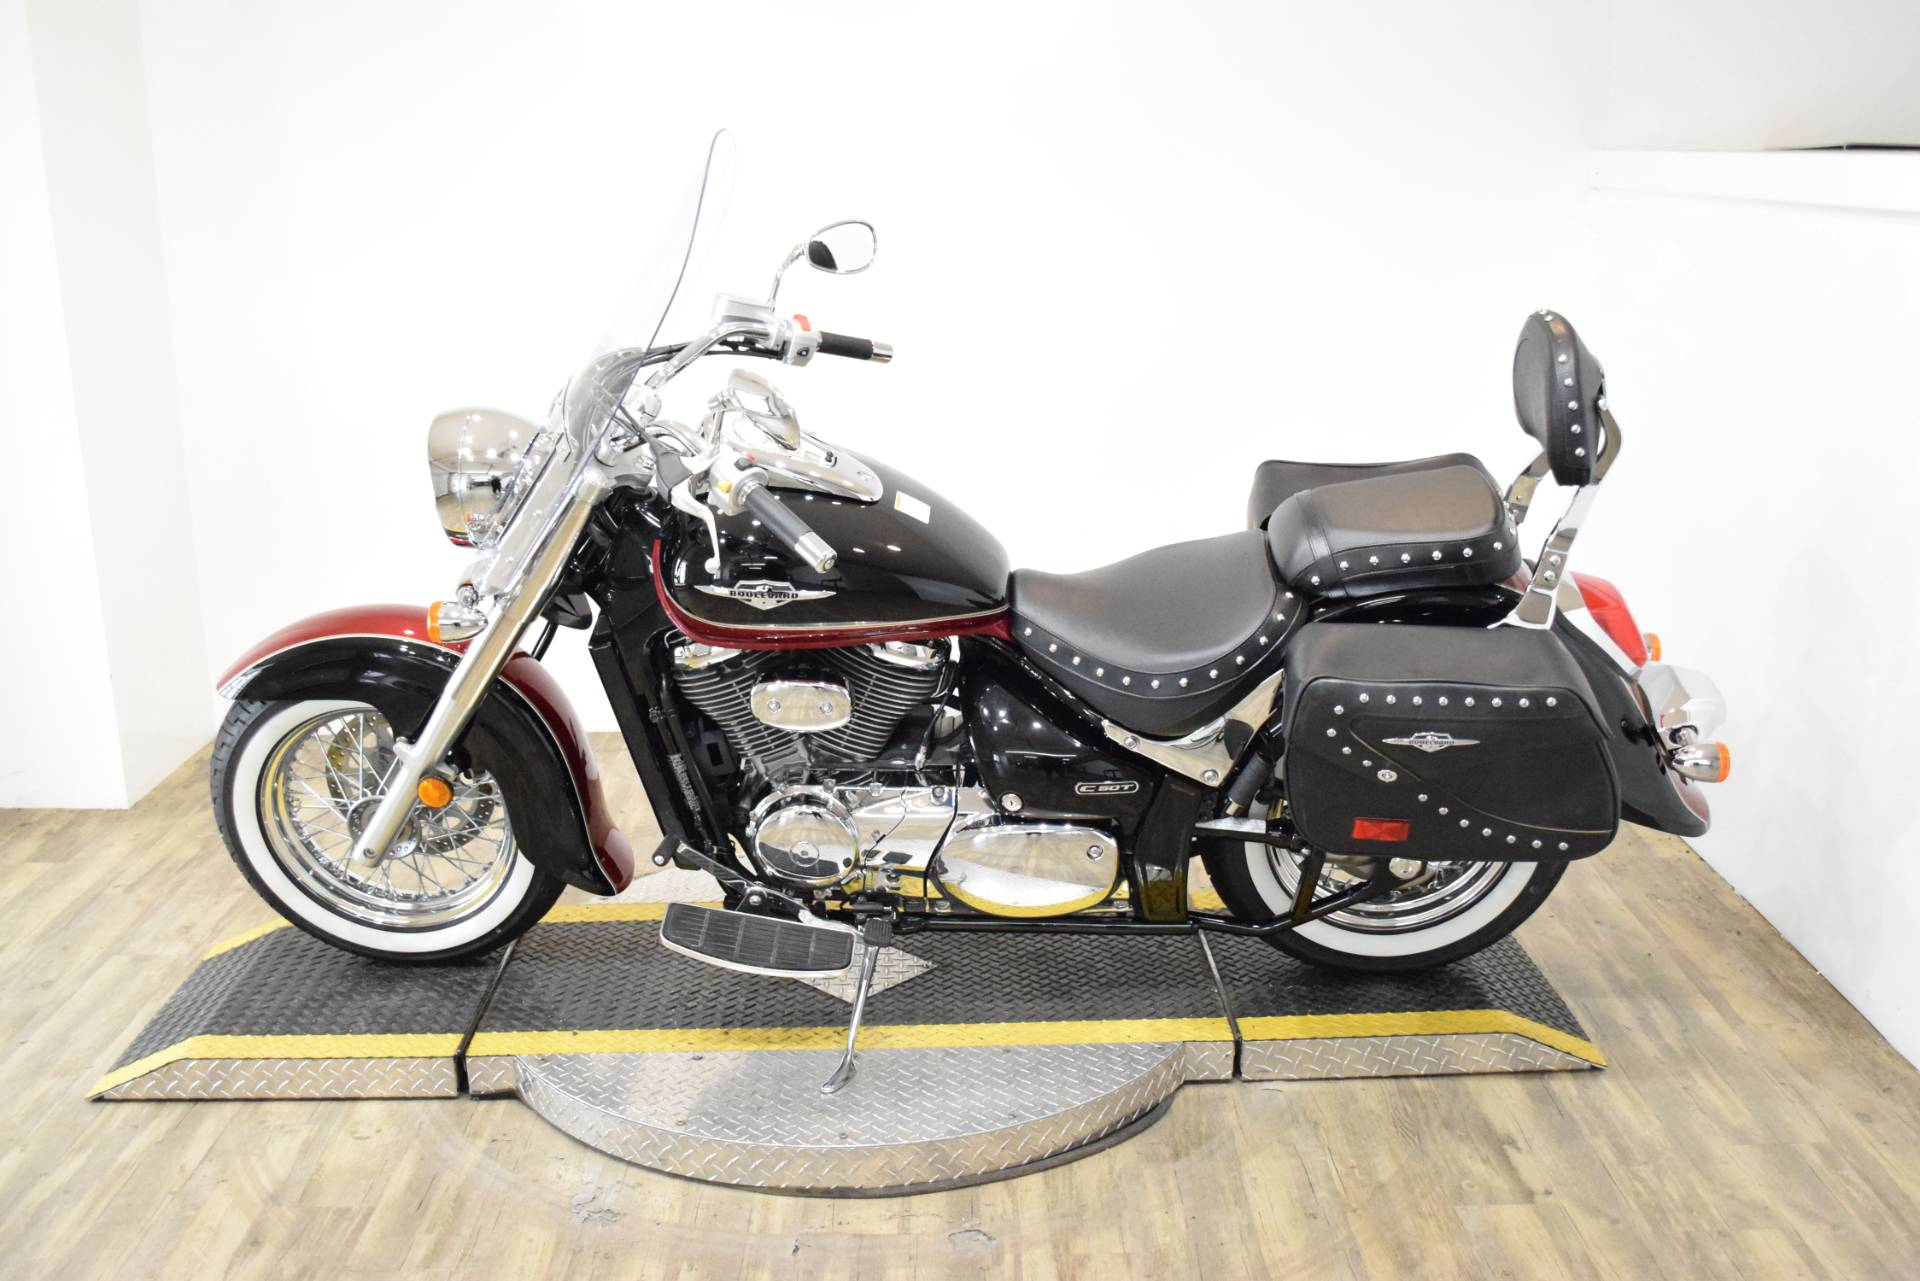 2013 Suzuki C50T BOULEVARD in Wauconda, Illinois - Photo 17